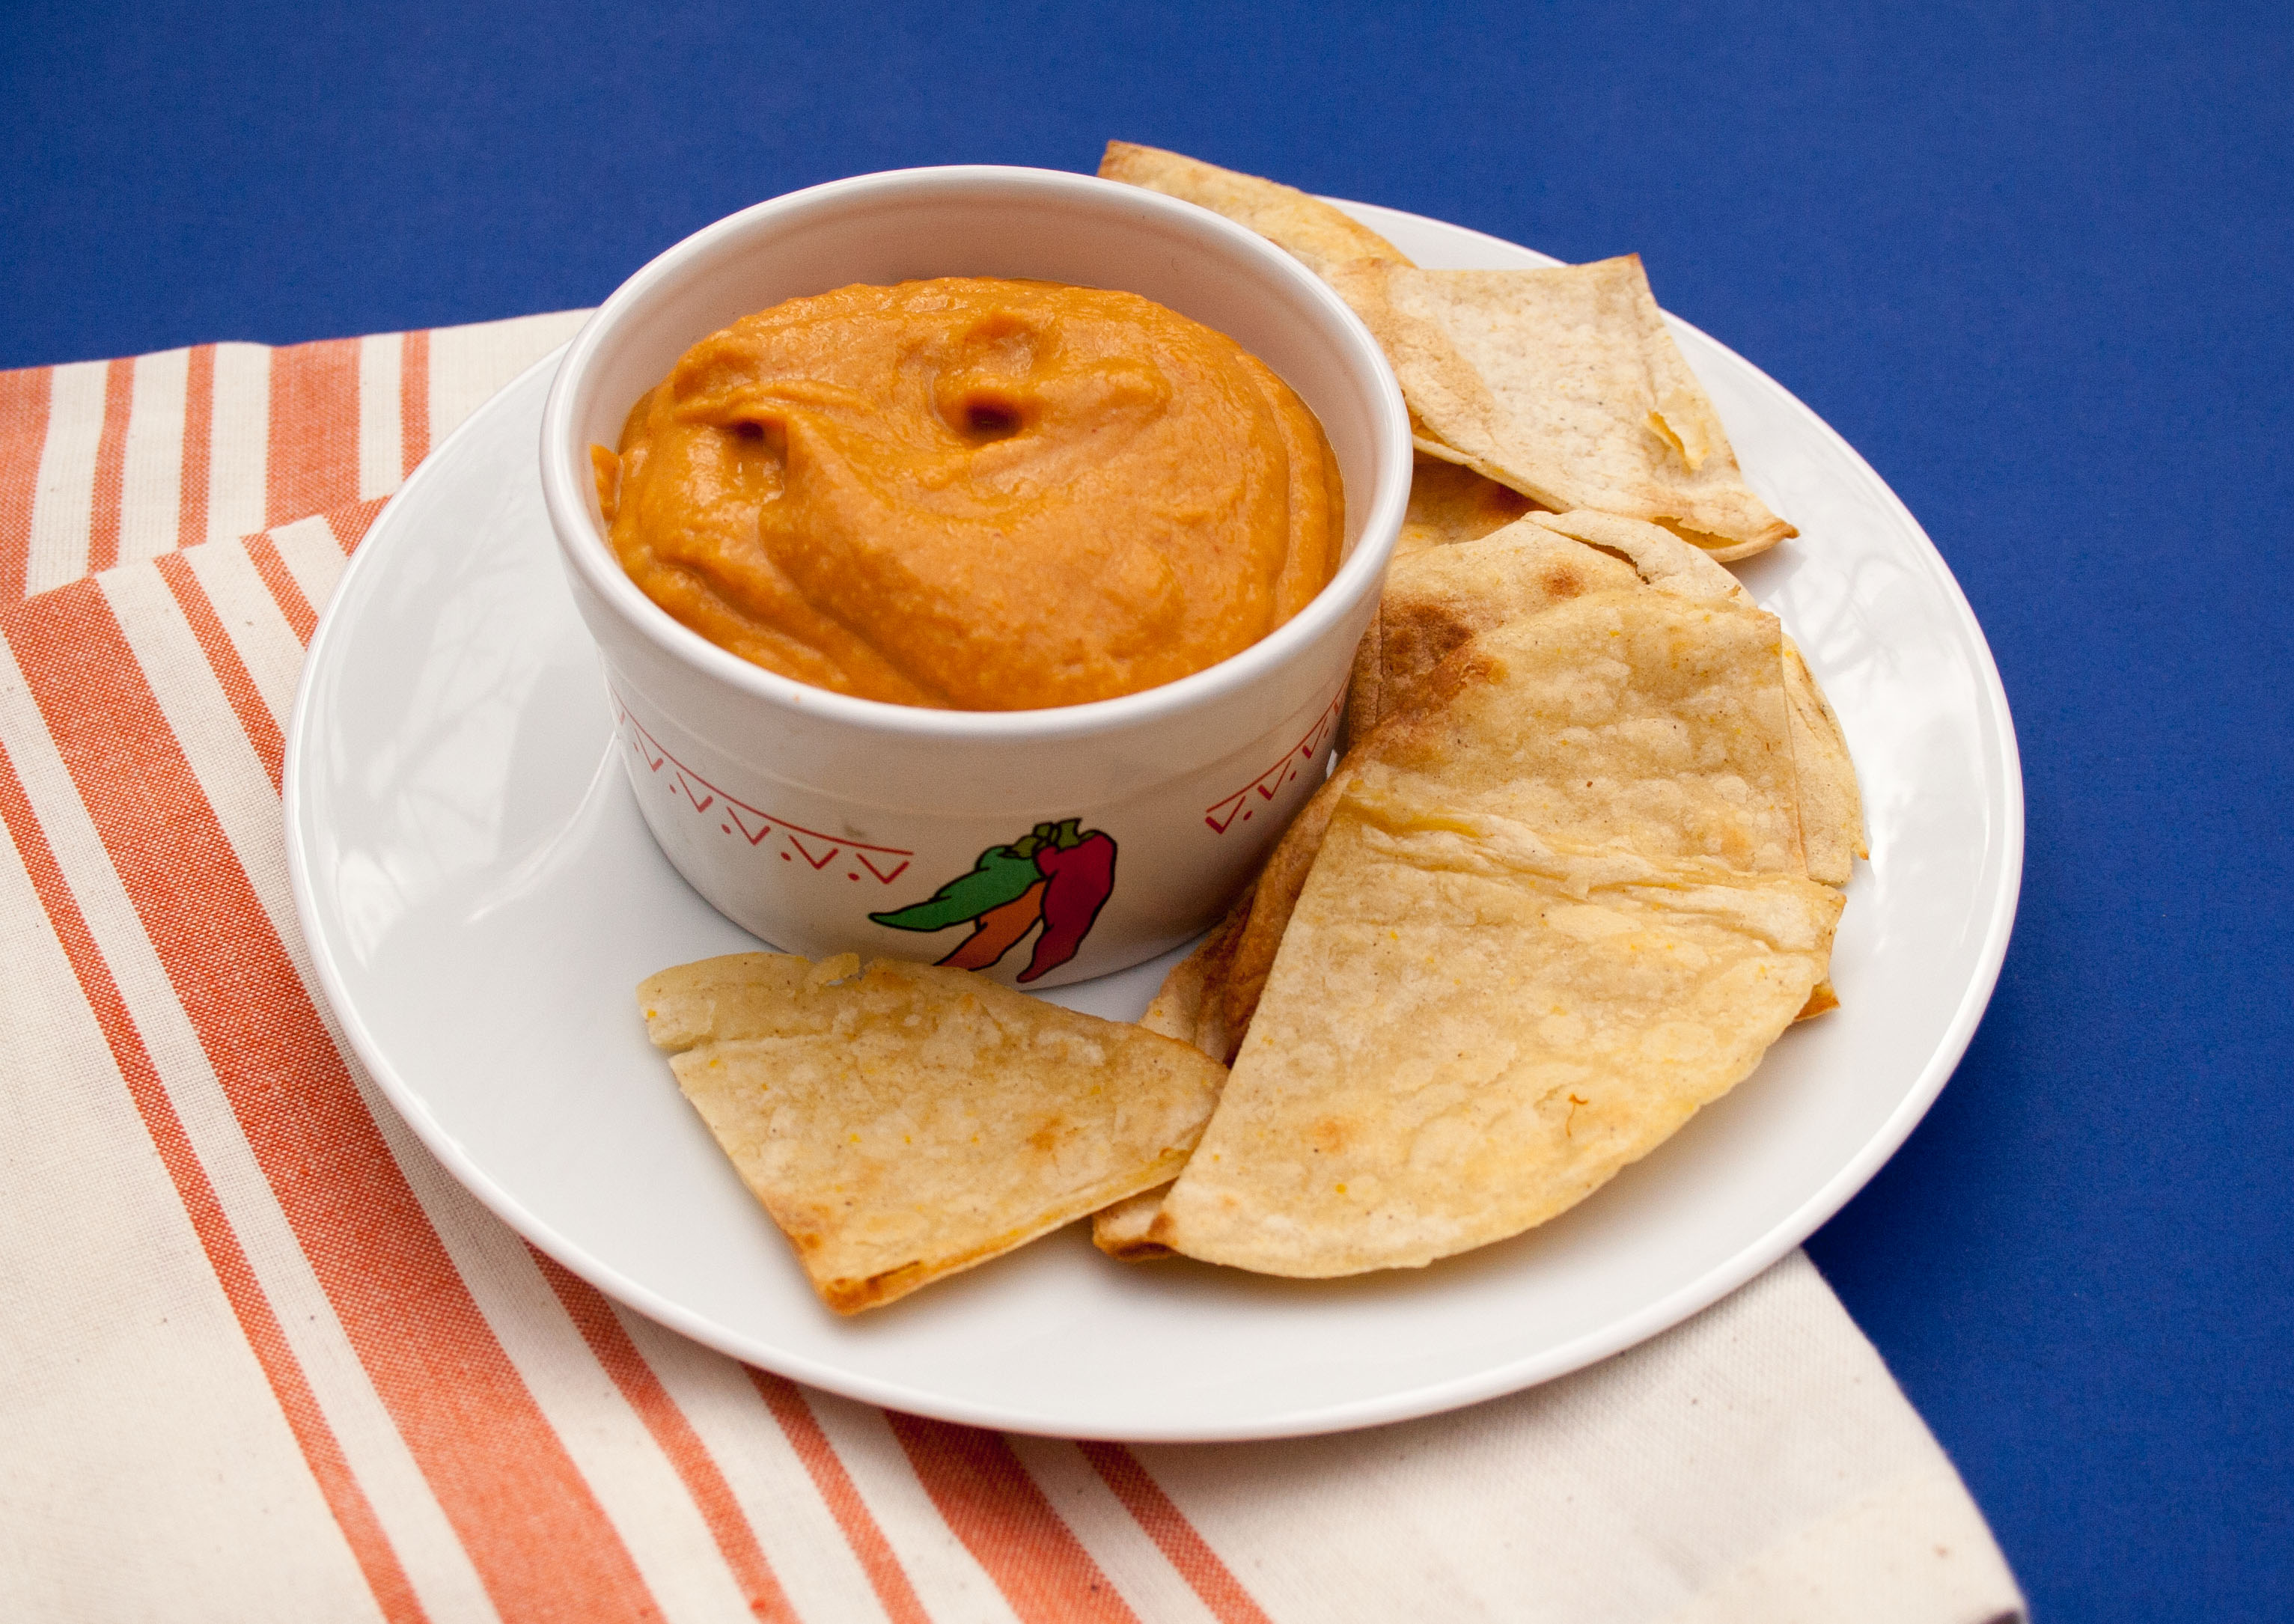 Sweet Potato Nacho Cheese with tortilla chips on a plate.